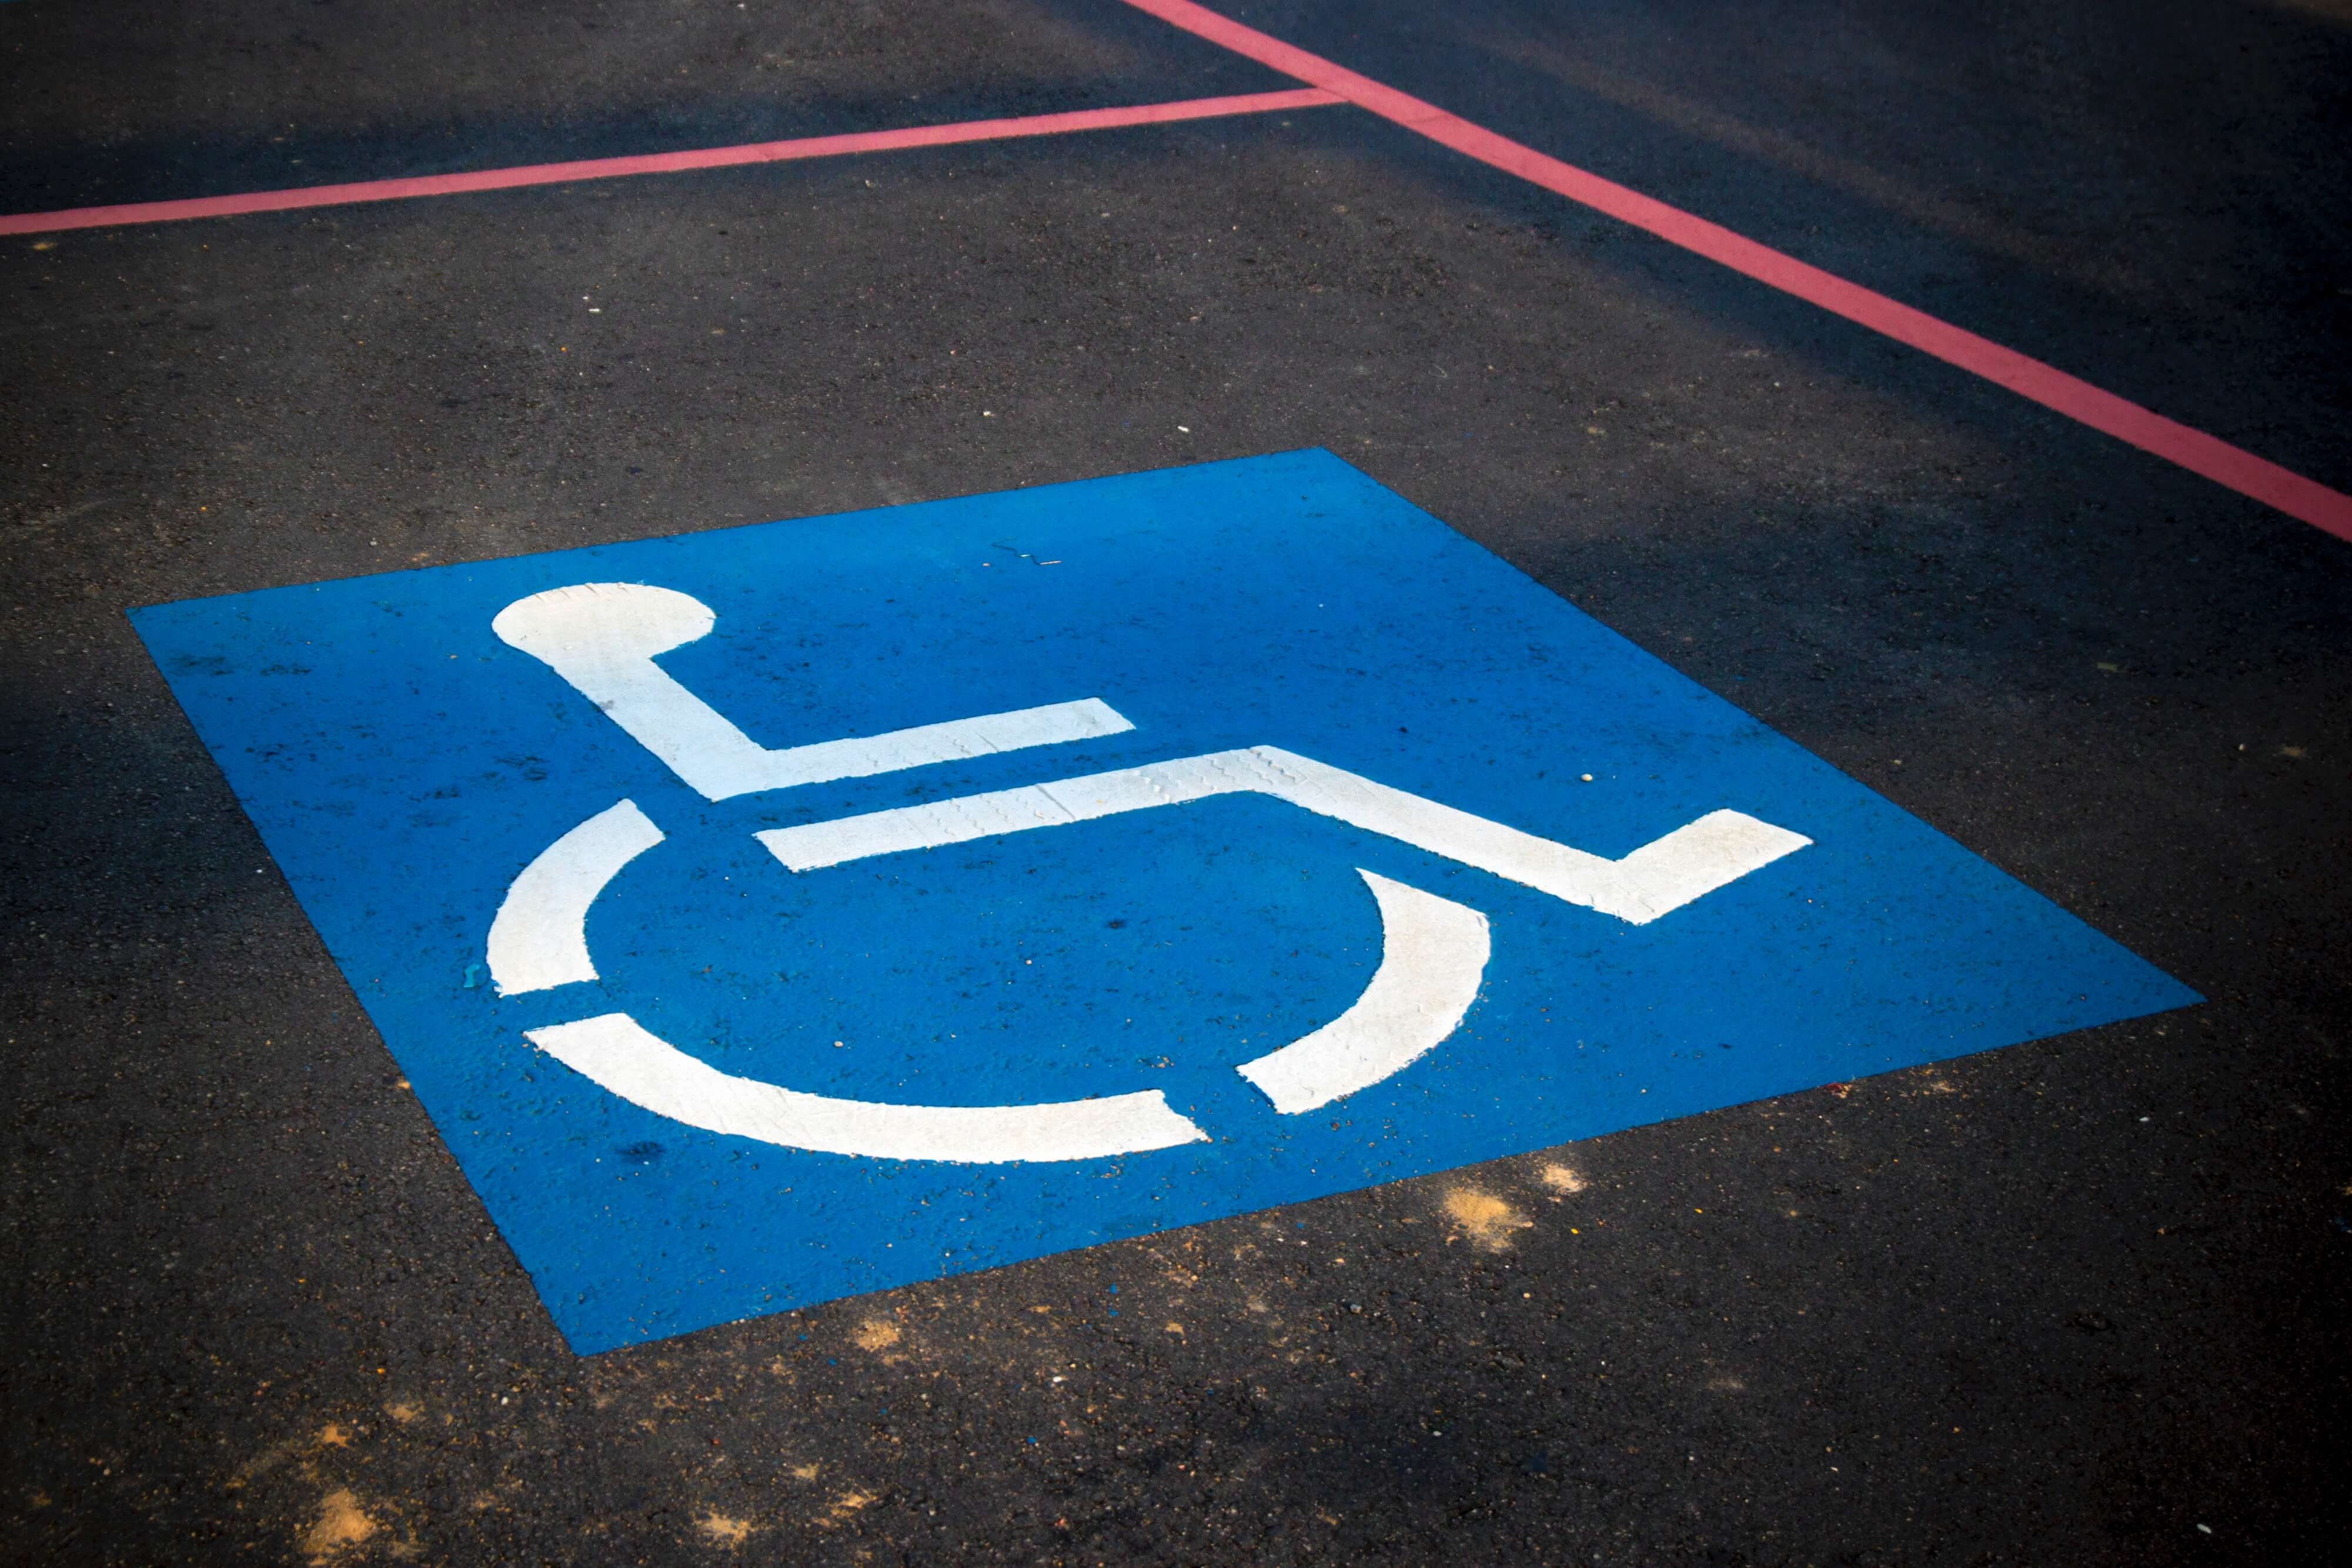 A wheelchair symbol drawn on road for accessibility awareness